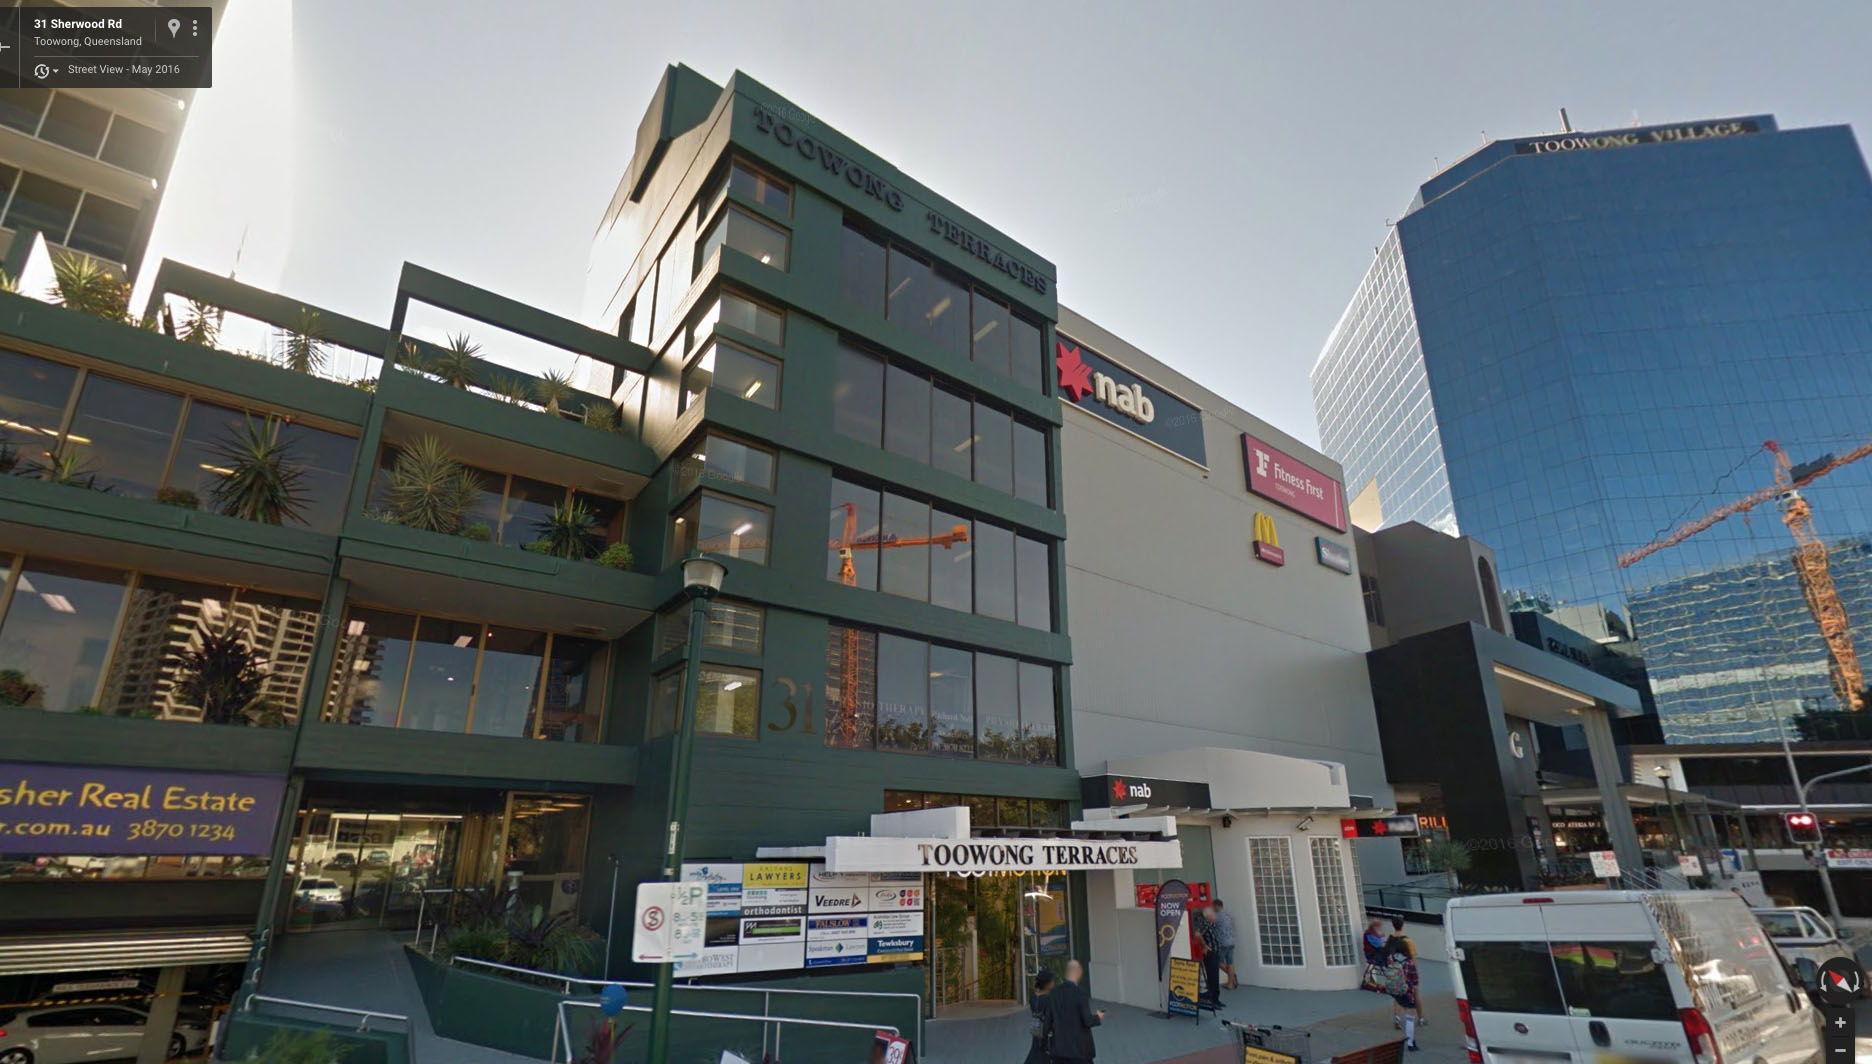 We are located directly adjacent to Toowong Village Shopping Centre at 31 Sherwood Rd